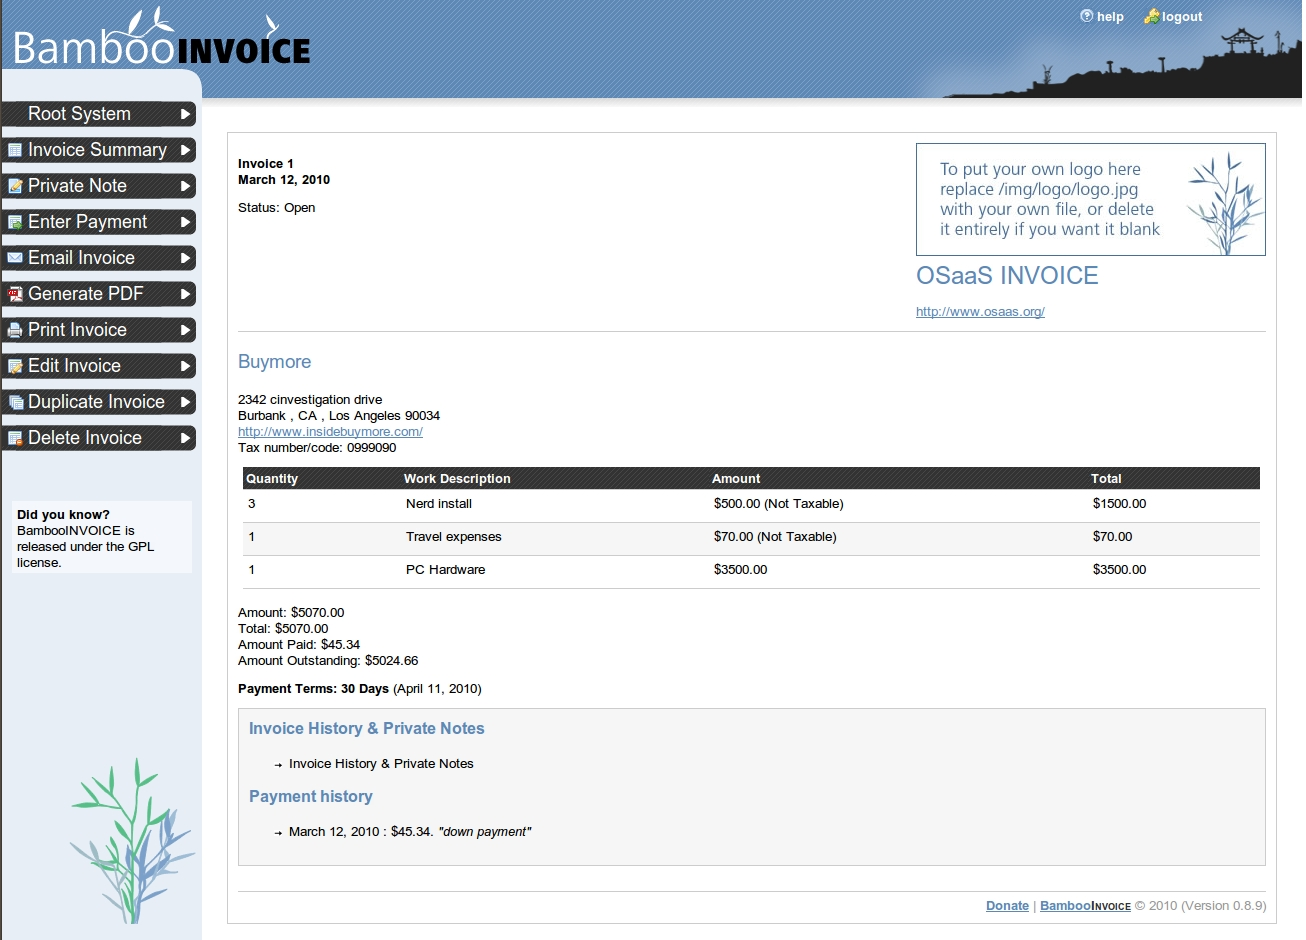 bamboo invoice simple amp clean free open source invoicing open source invoice